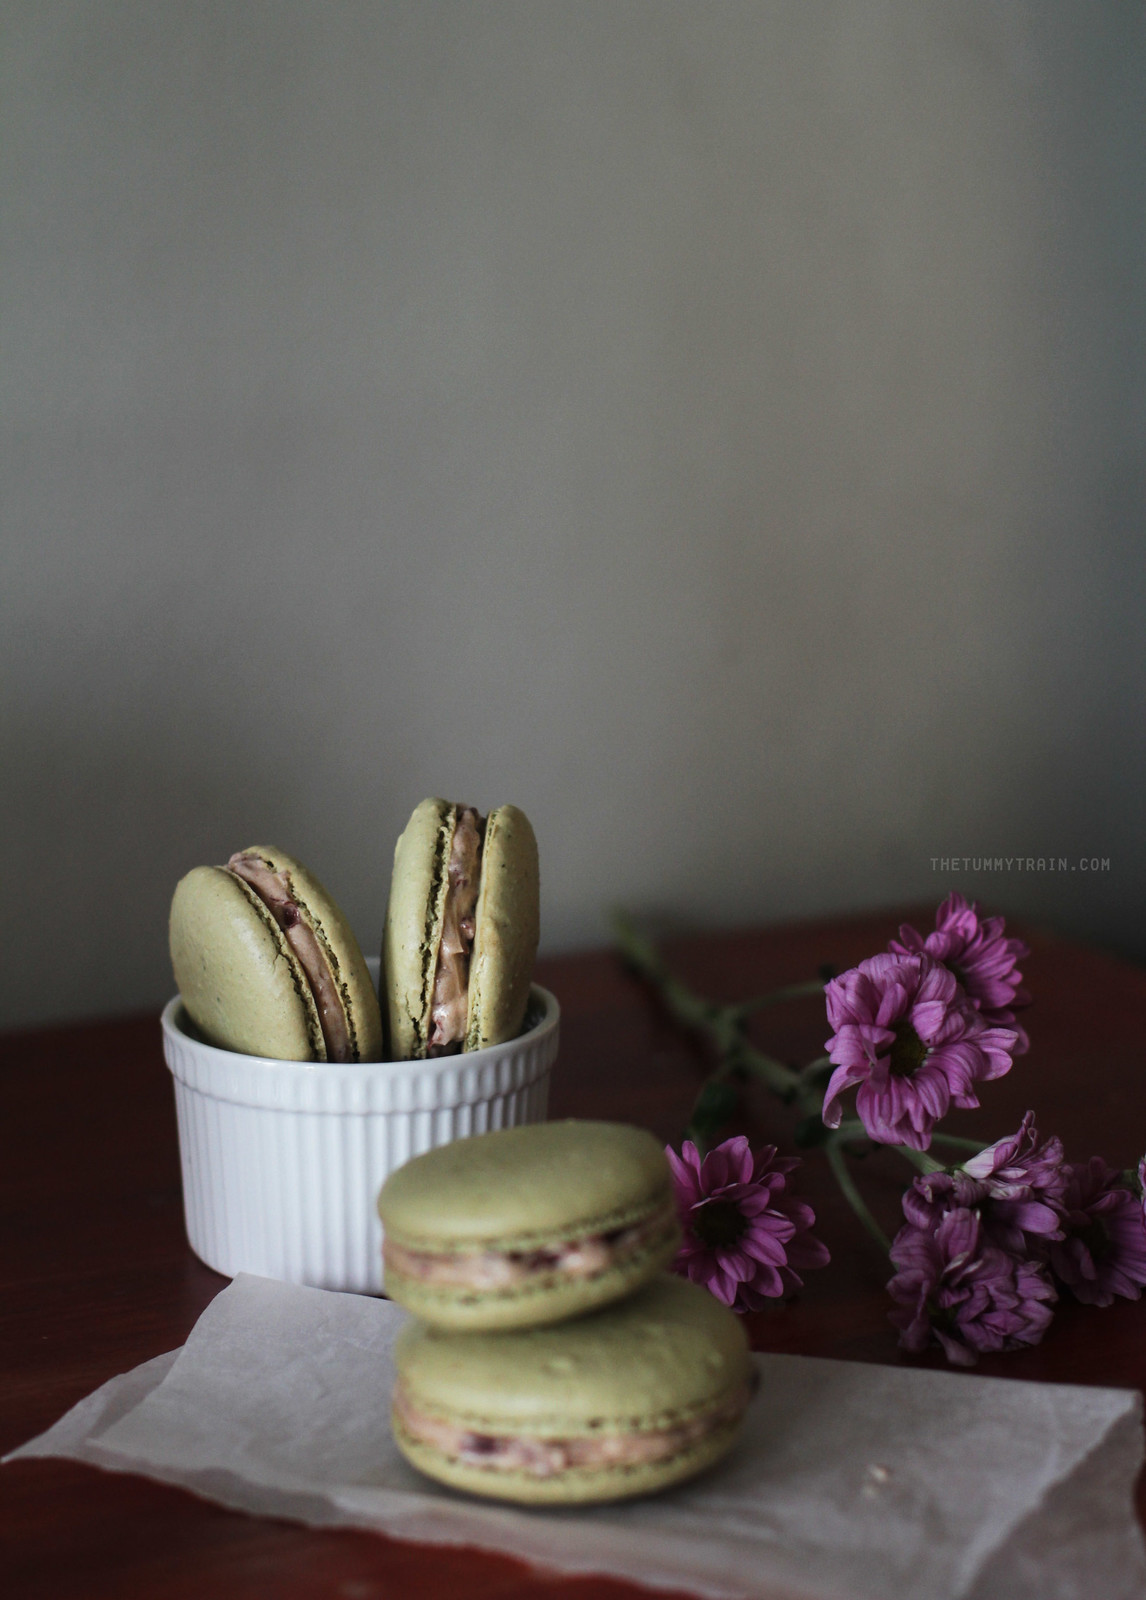 20465203944 f7fed20a38 h - Matcha Macarons with Red Bean Filling + My Japan Travel Video!